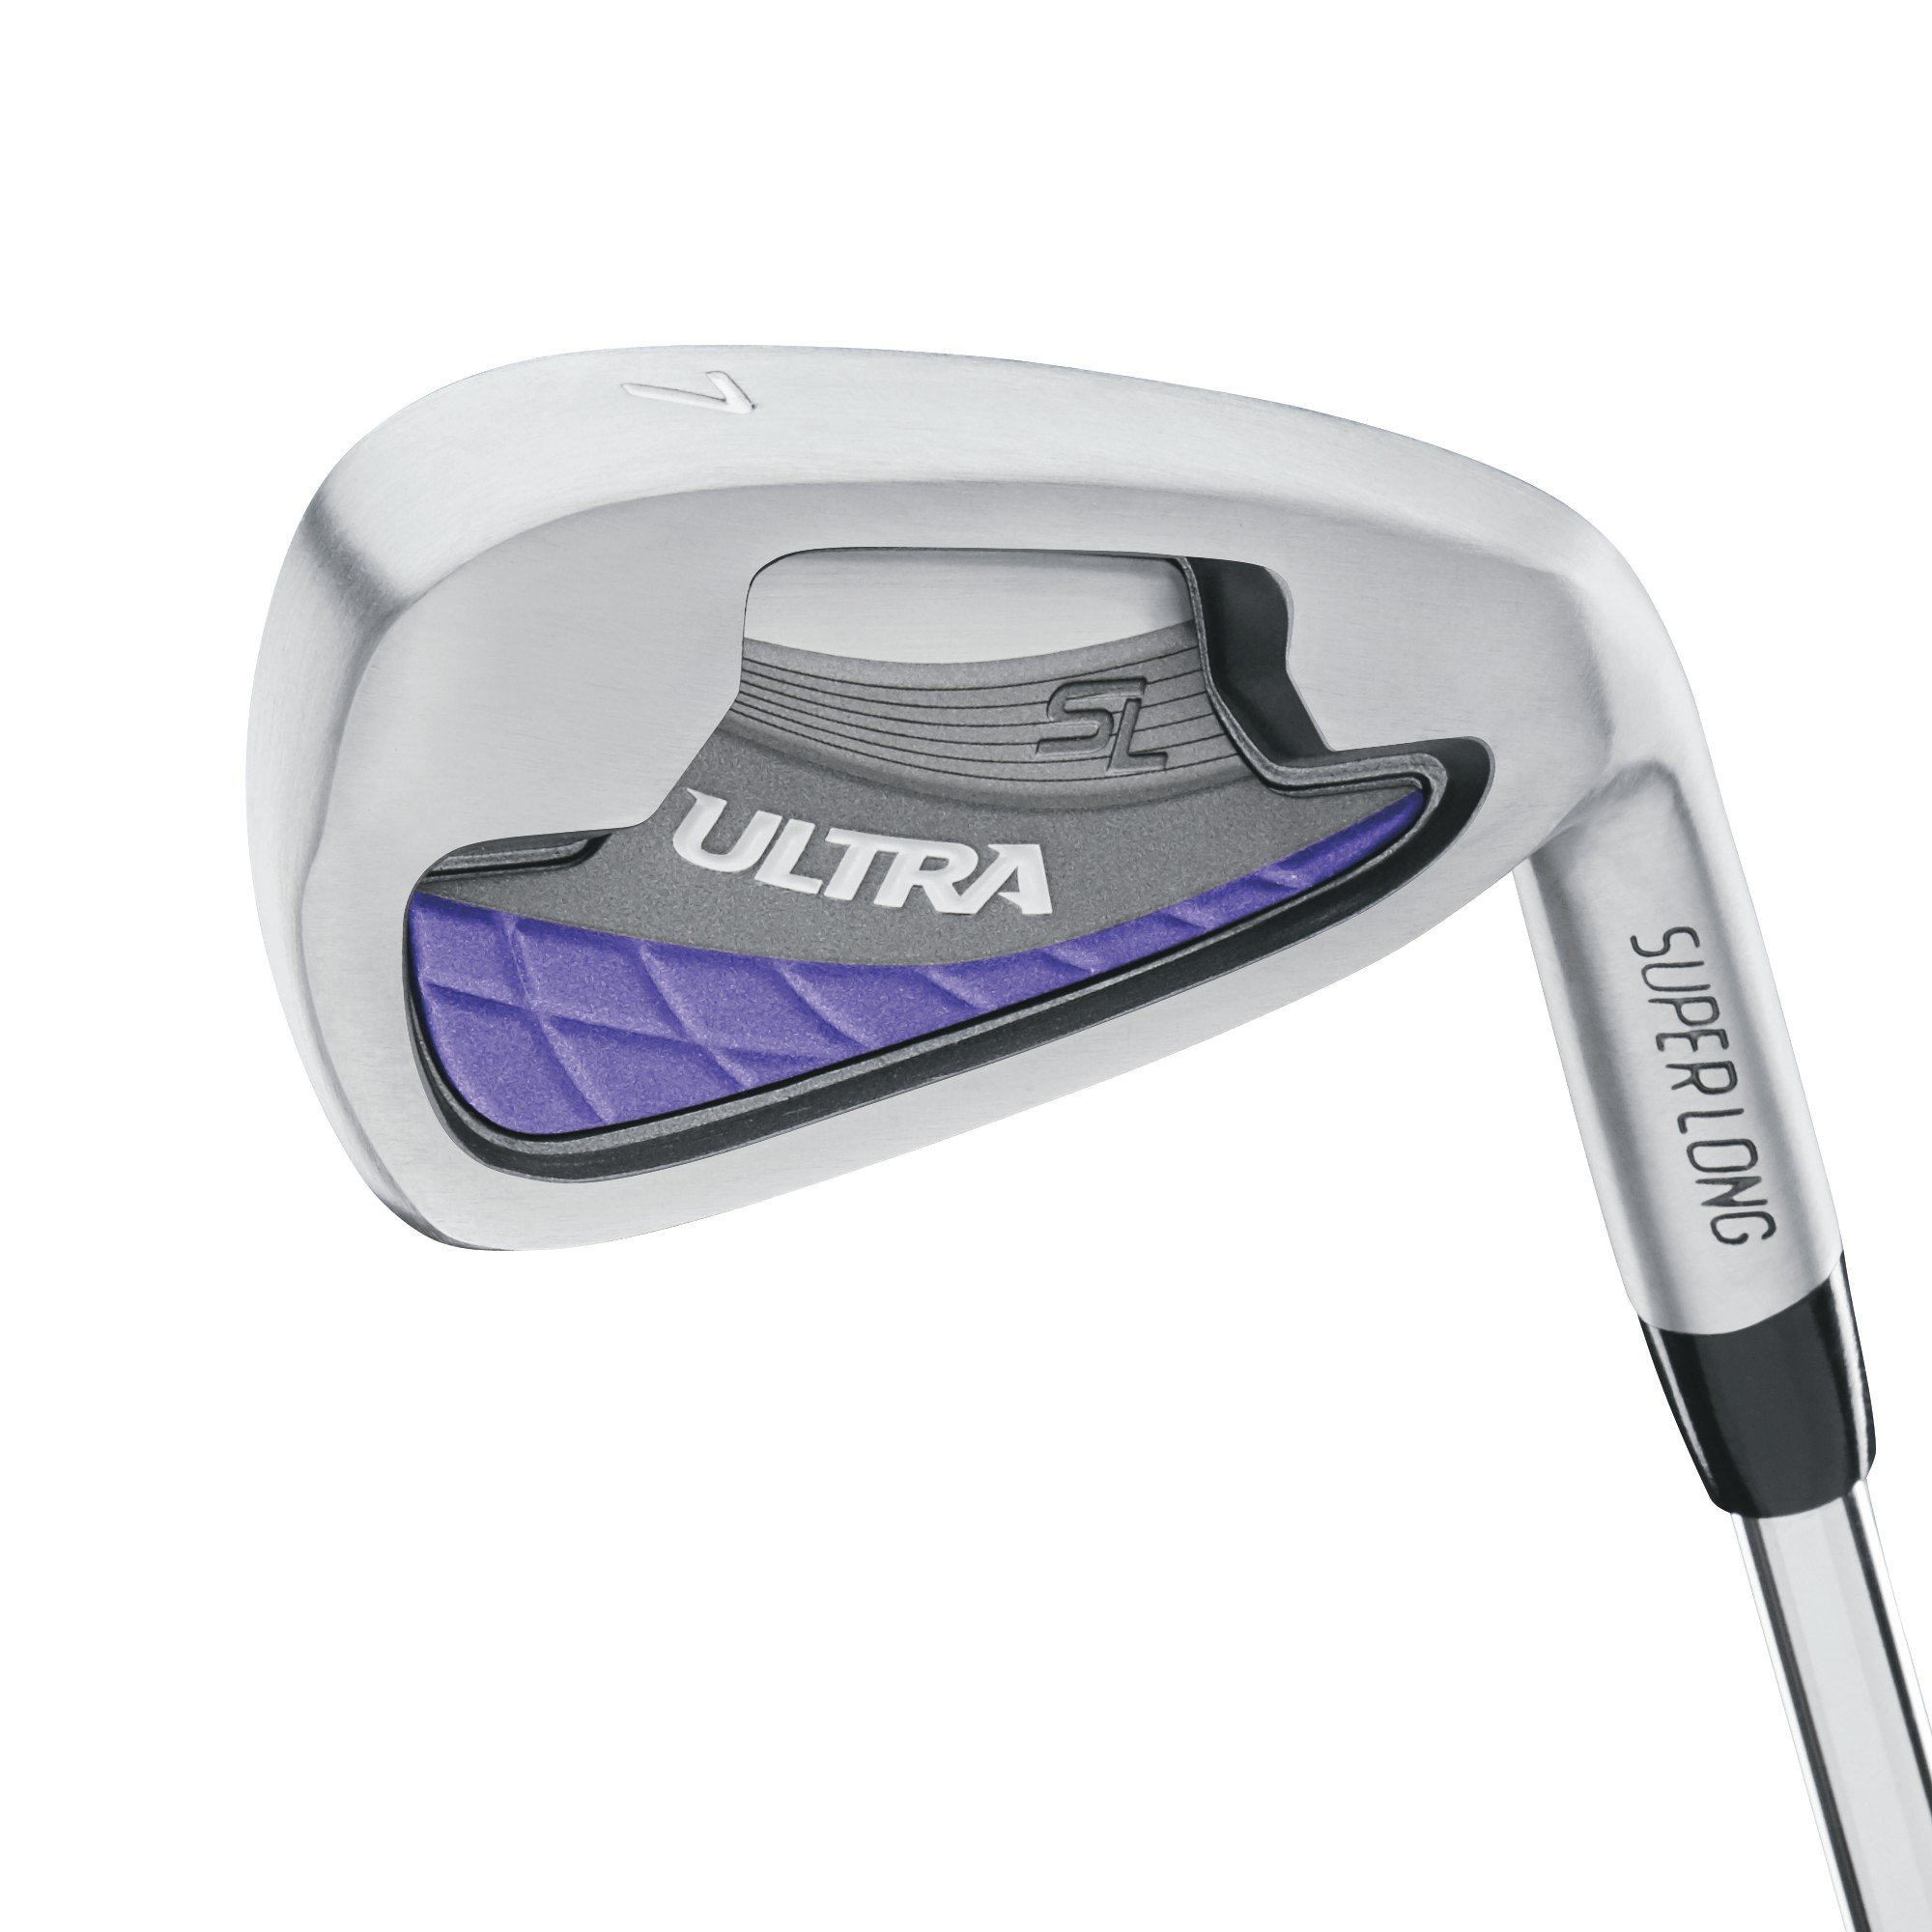 Wilson Golf Women's Ultra Package Set, Right Hand, White by Wilson Golf (Image #5)